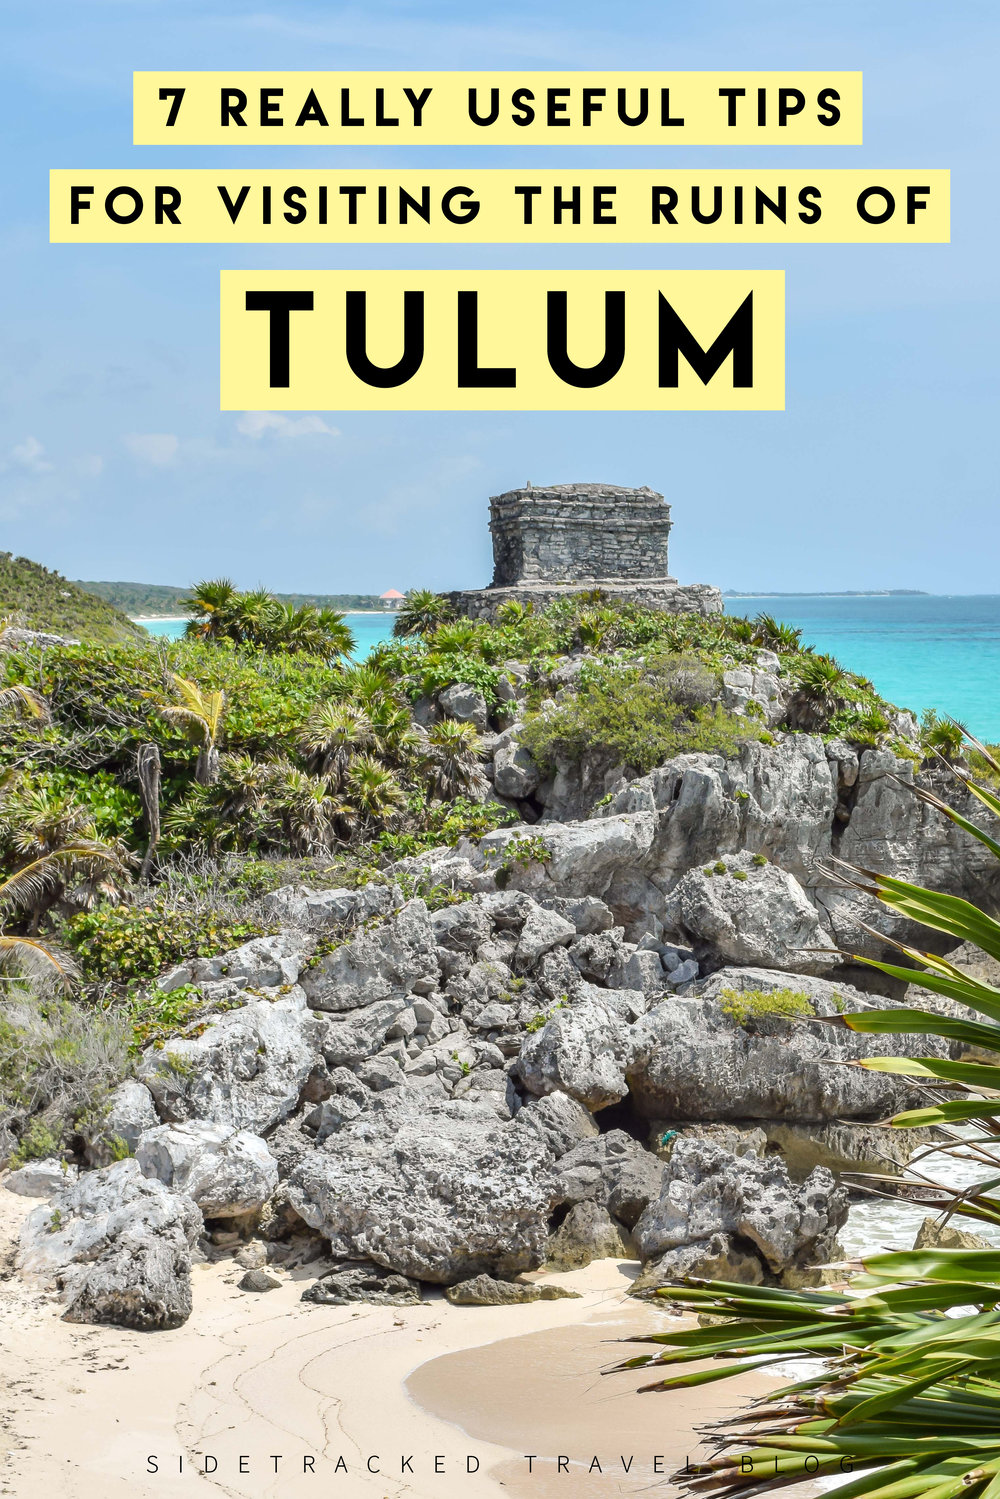 As beautiful as the Tulum ruins are, the site is becoming increasingly popular and overly commercialized. The trick to enjoying your visit is to be fully prepared - here are 7 really useful tips you should know before you go to Tulum!